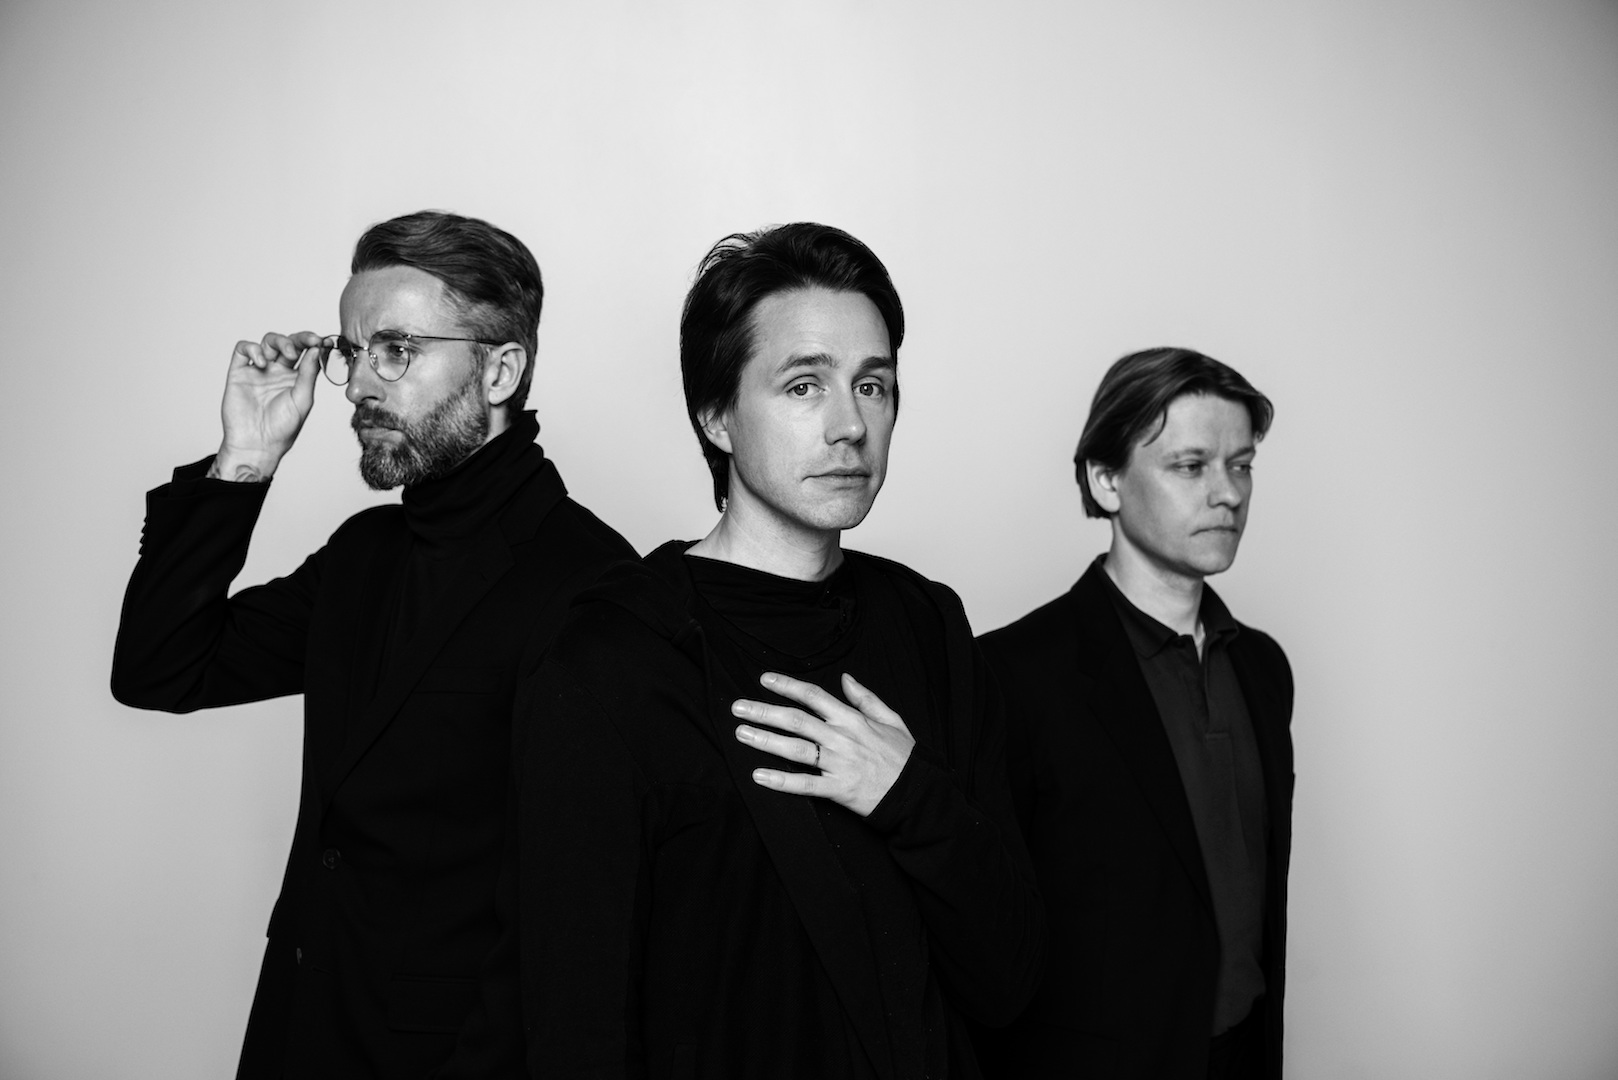 Mew offer up new track 'Twist Quest' from their upcoming album Visuals!